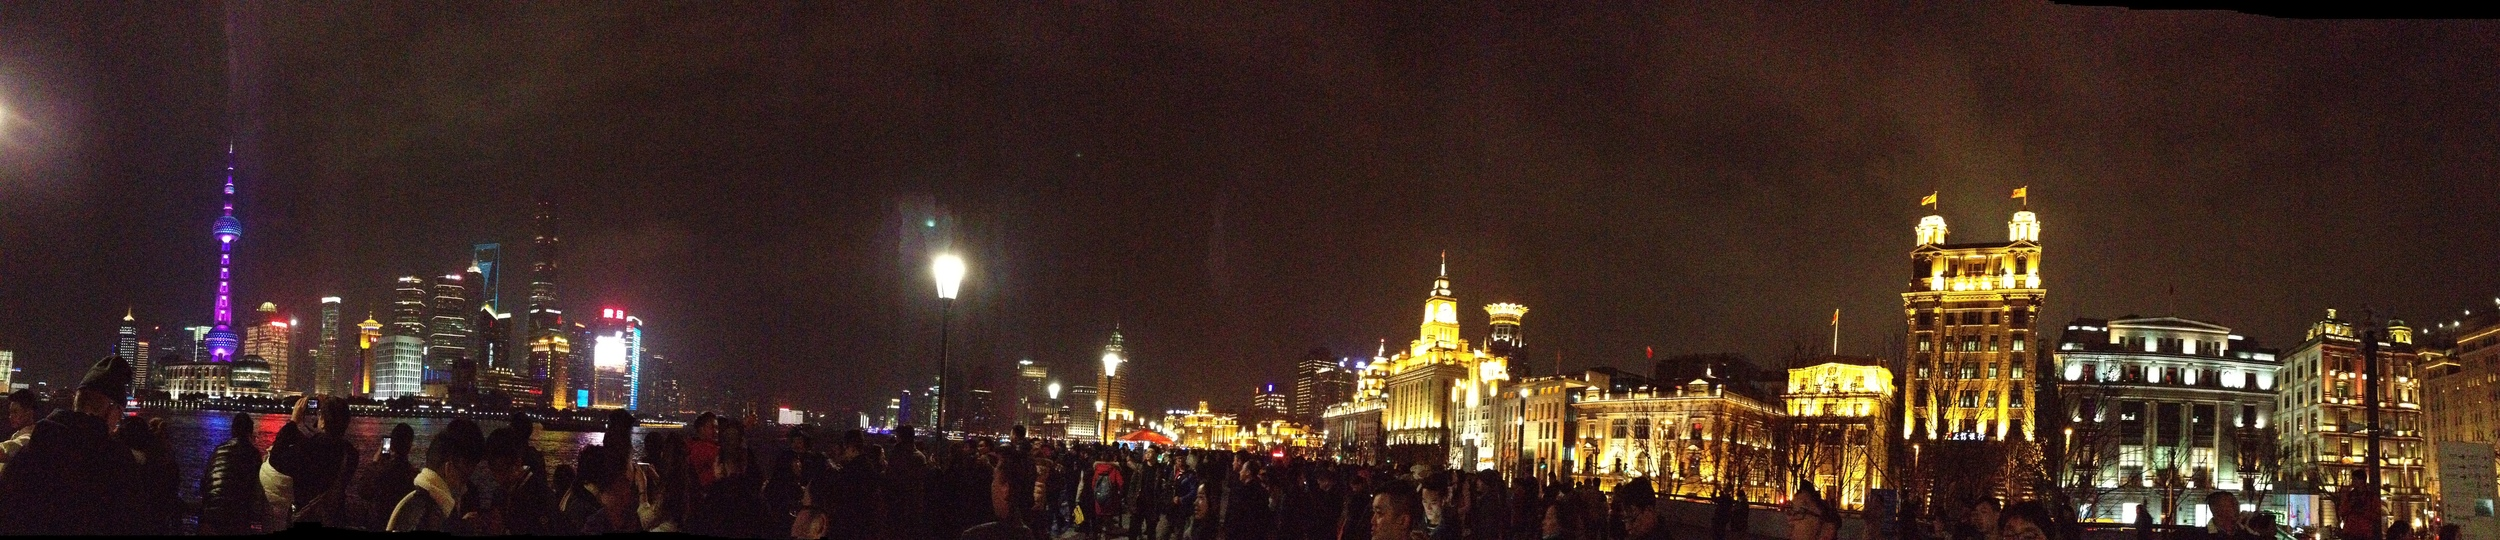 The Bund. New Shanghai on one side, Old Shanghai on the other side of the Huangpu River.